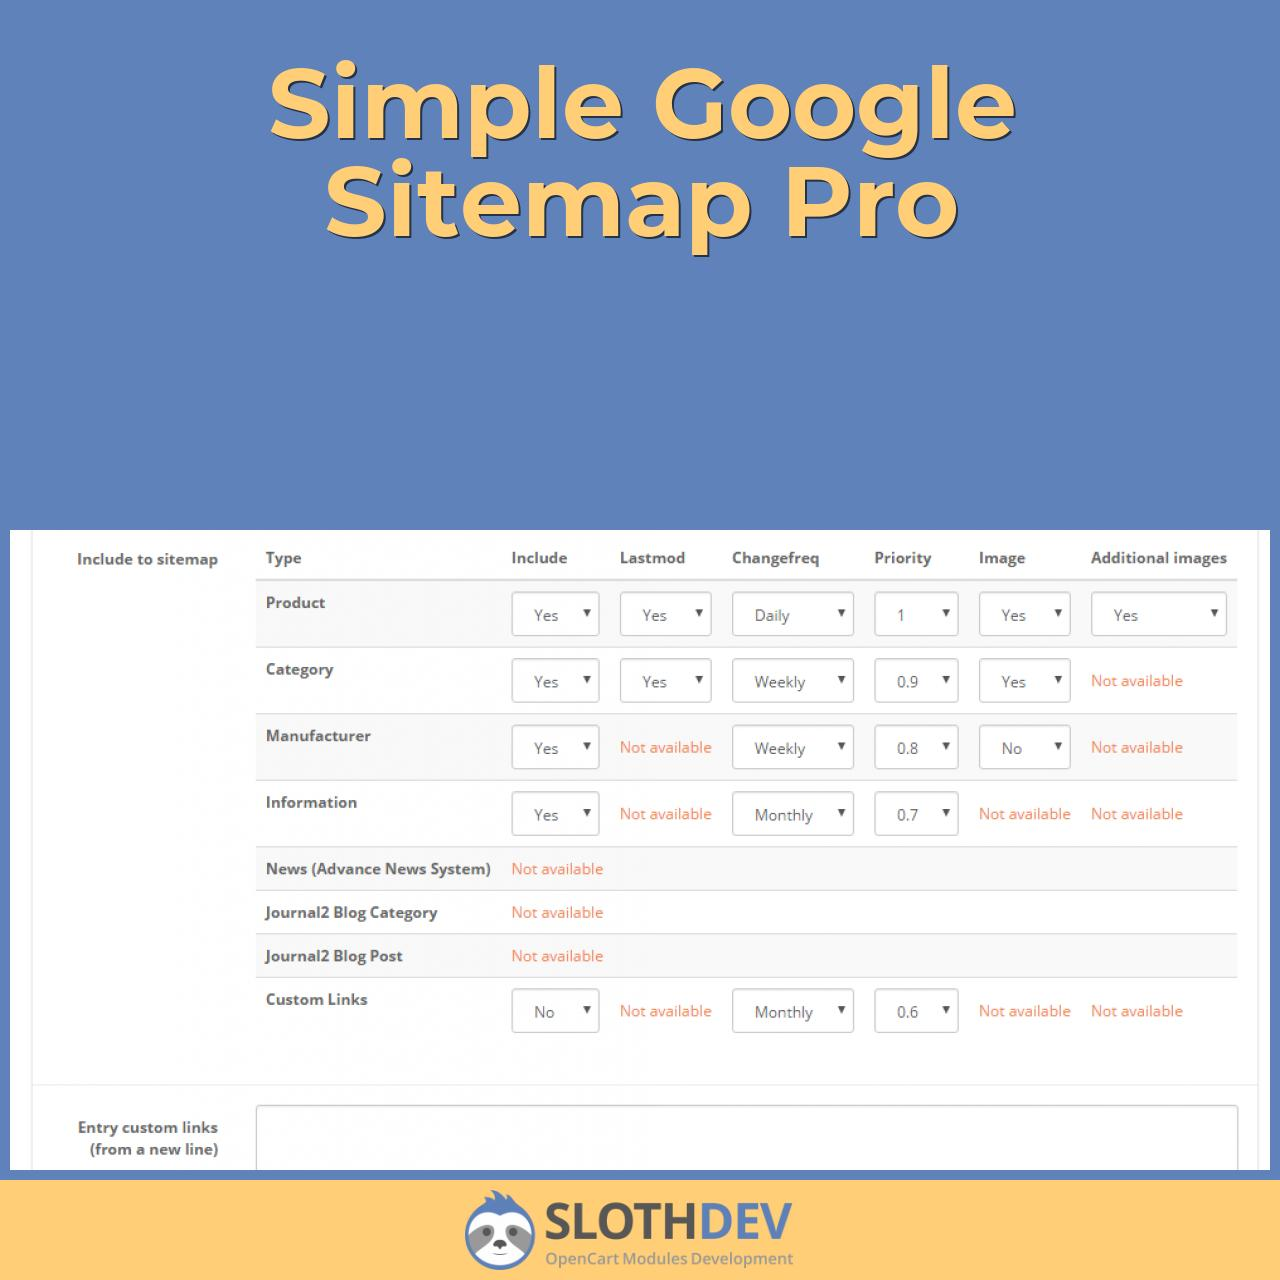 Simple Google Sitemap Pro